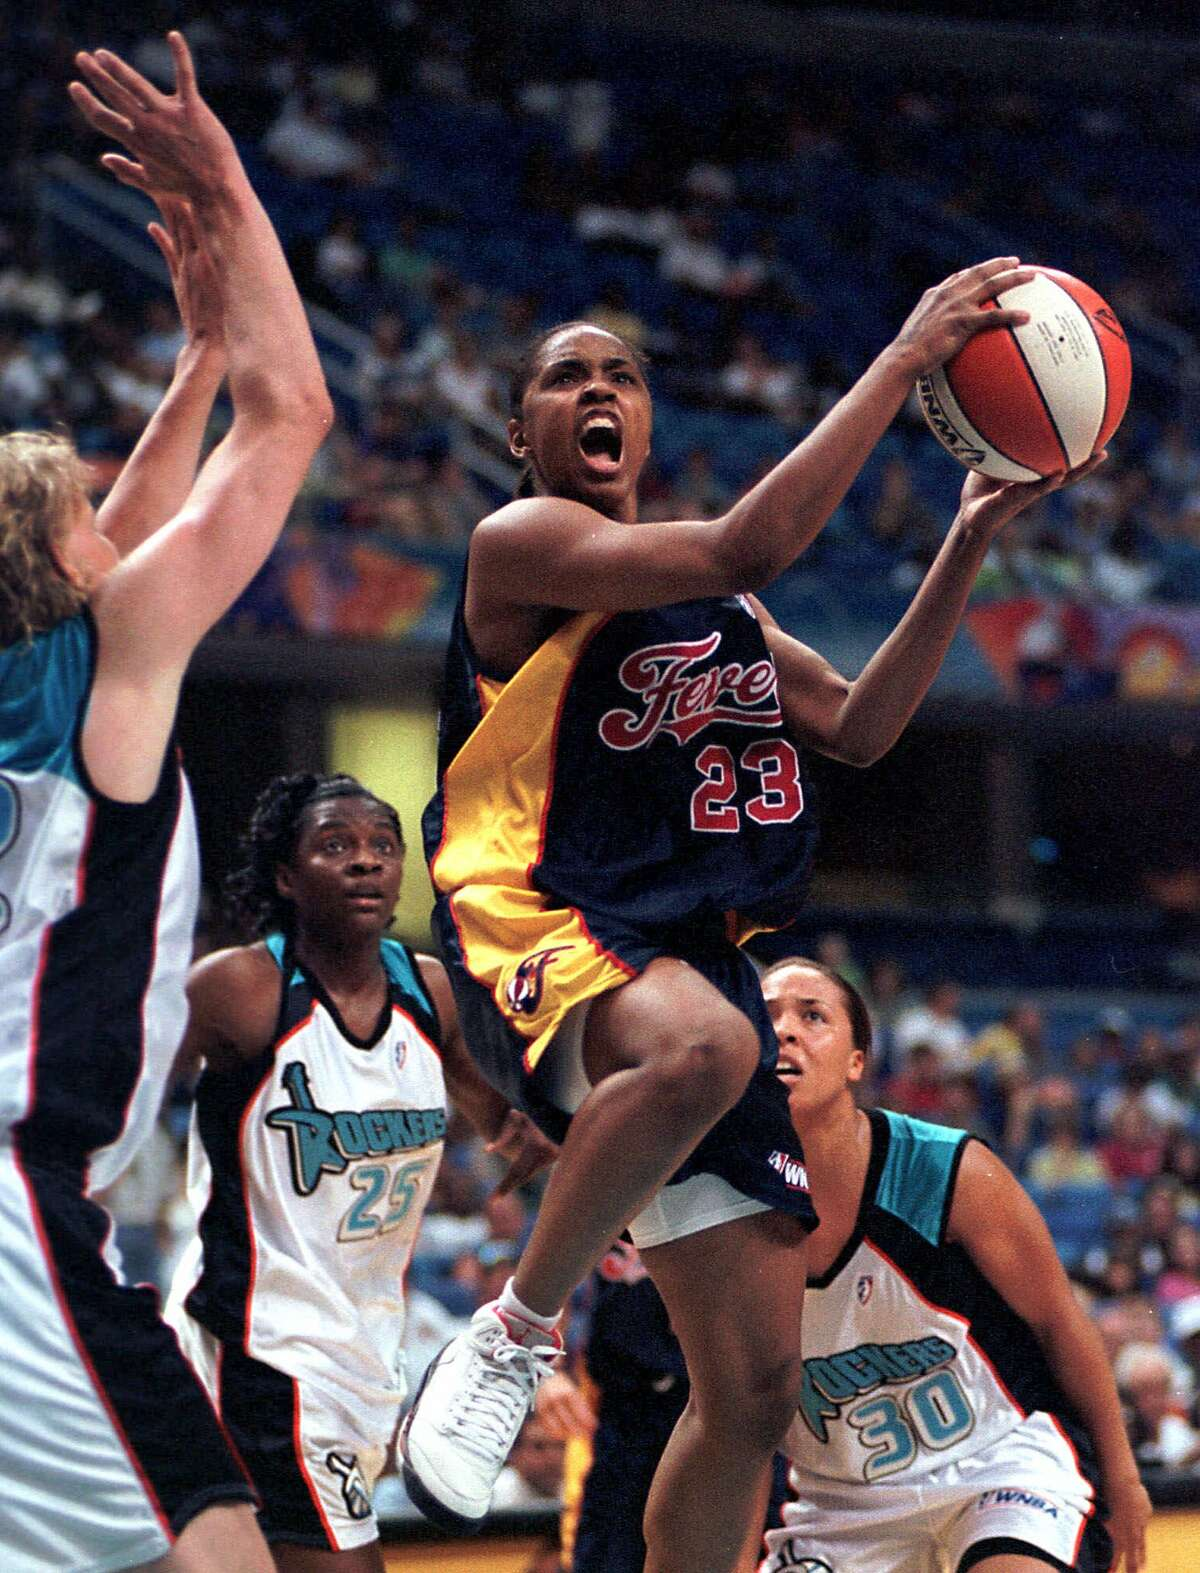 Indiana Fever's Rita Williams goes up for a shot in 2000.